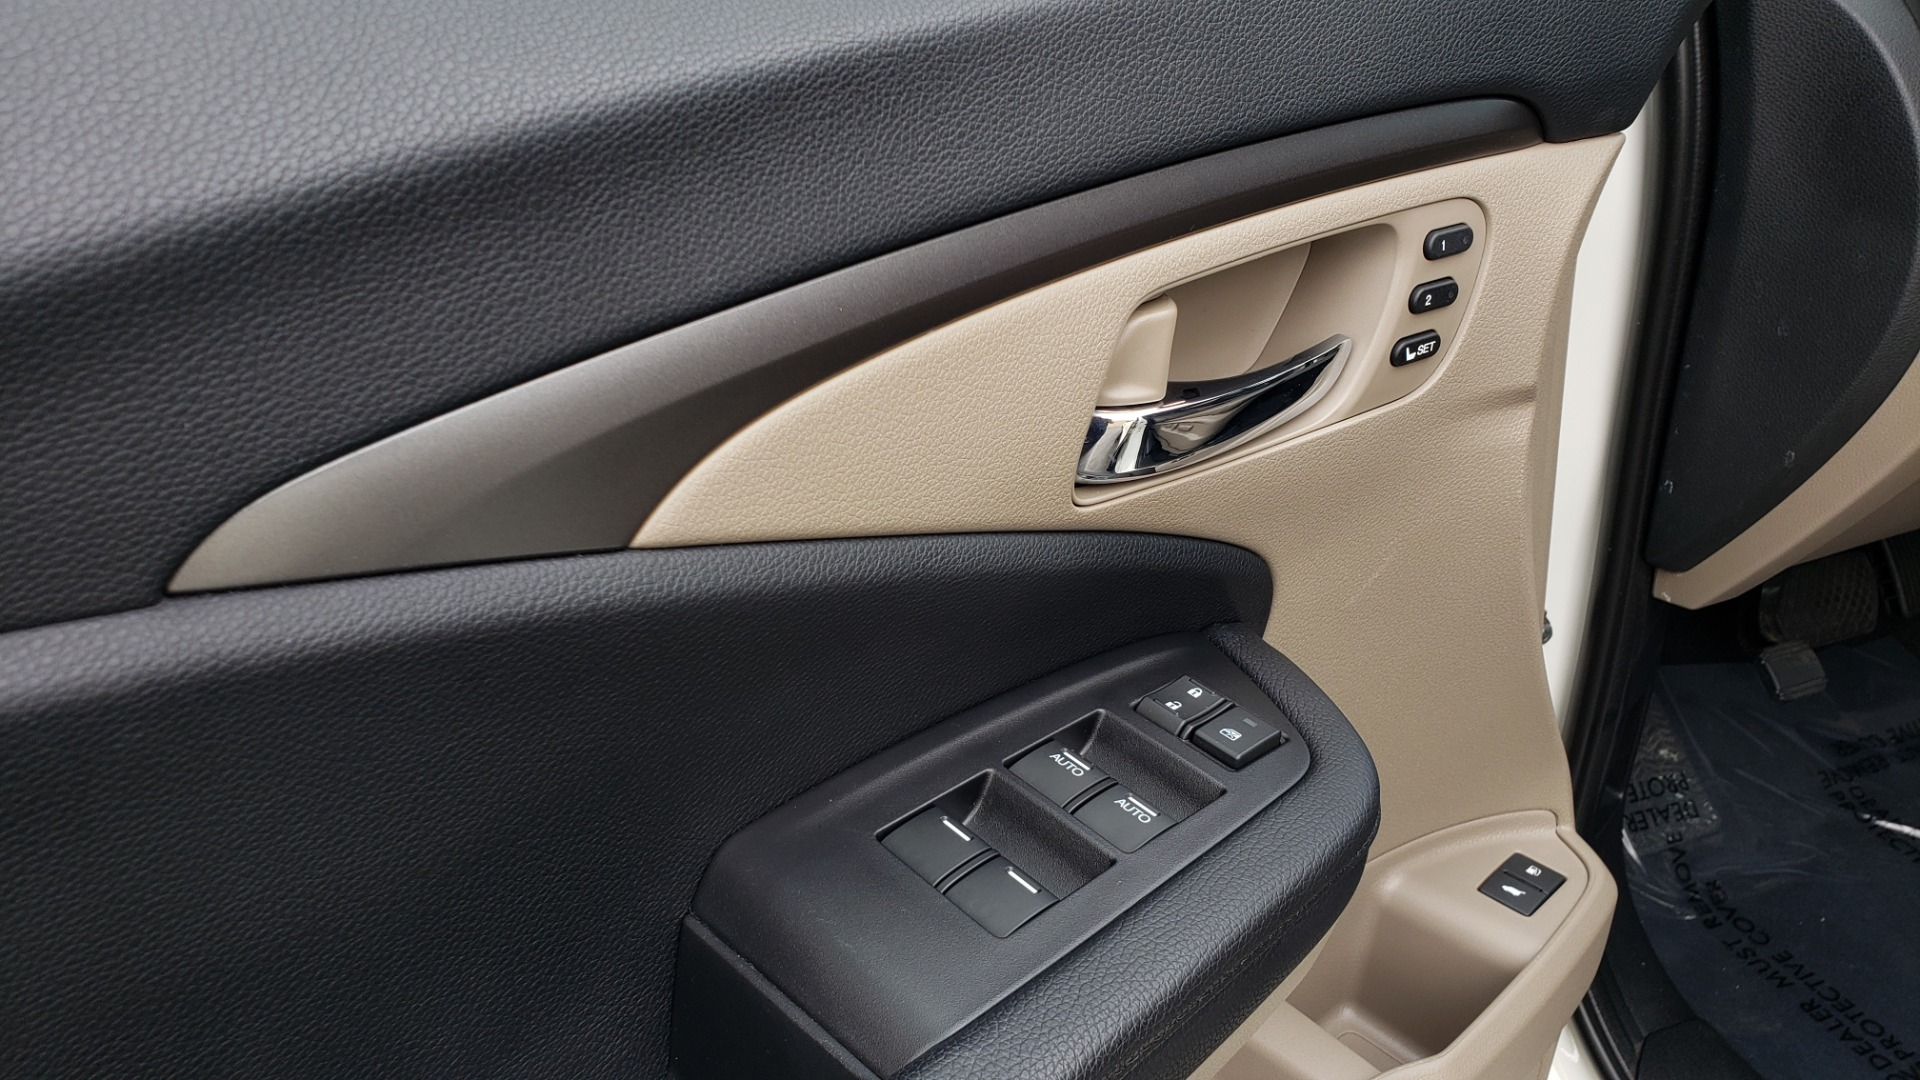 Used 2019 Honda PILOT EX-L / V6 / NAV / SUNROOF / DVD / 3-ROW / REARVIEW for sale Sold at Formula Imports in Charlotte NC 28227 34